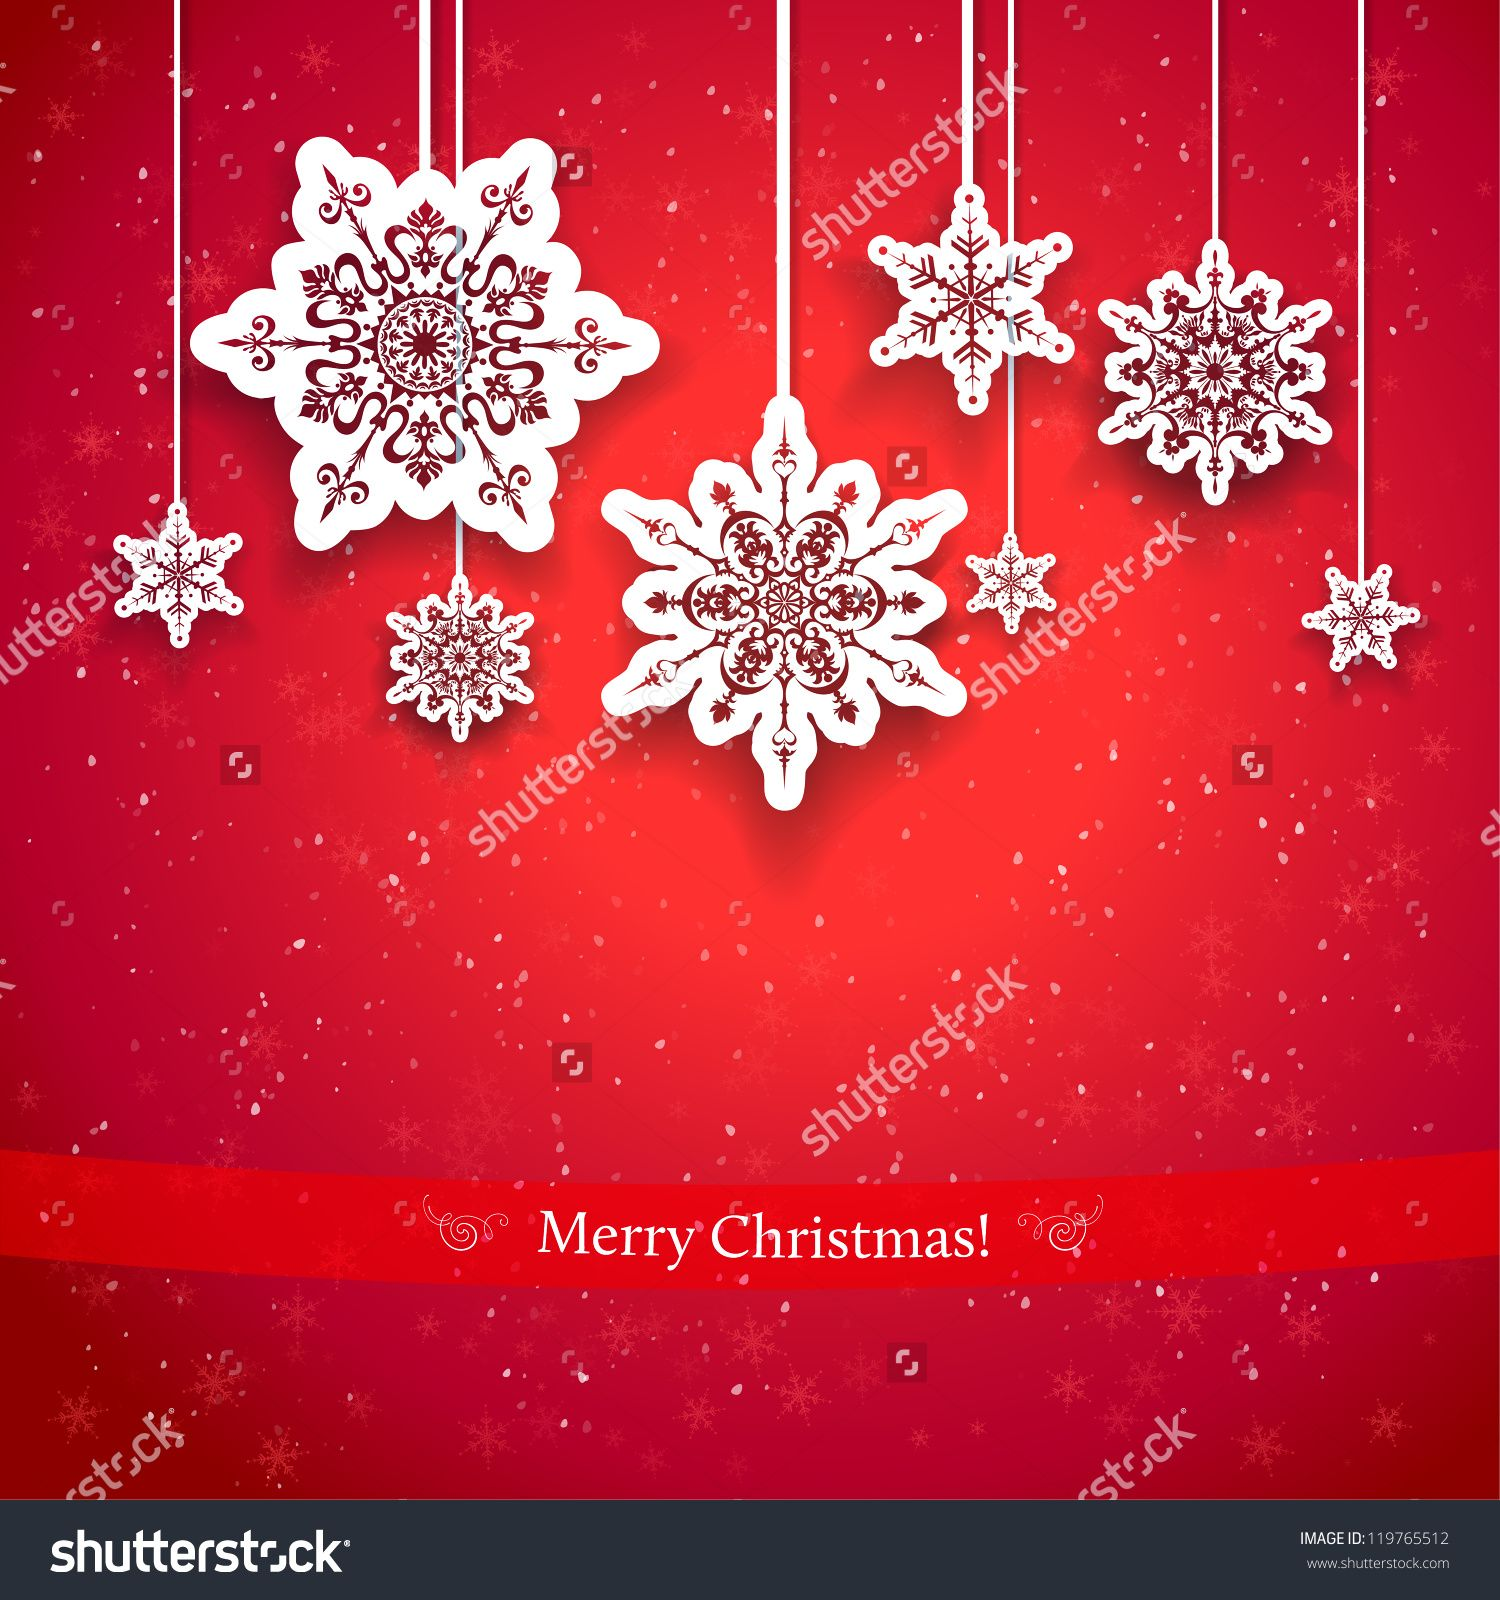 Red Christmas Design With Decorative Snowflakes Stock Vector Christmas  Designs Christmas Design Inspiration